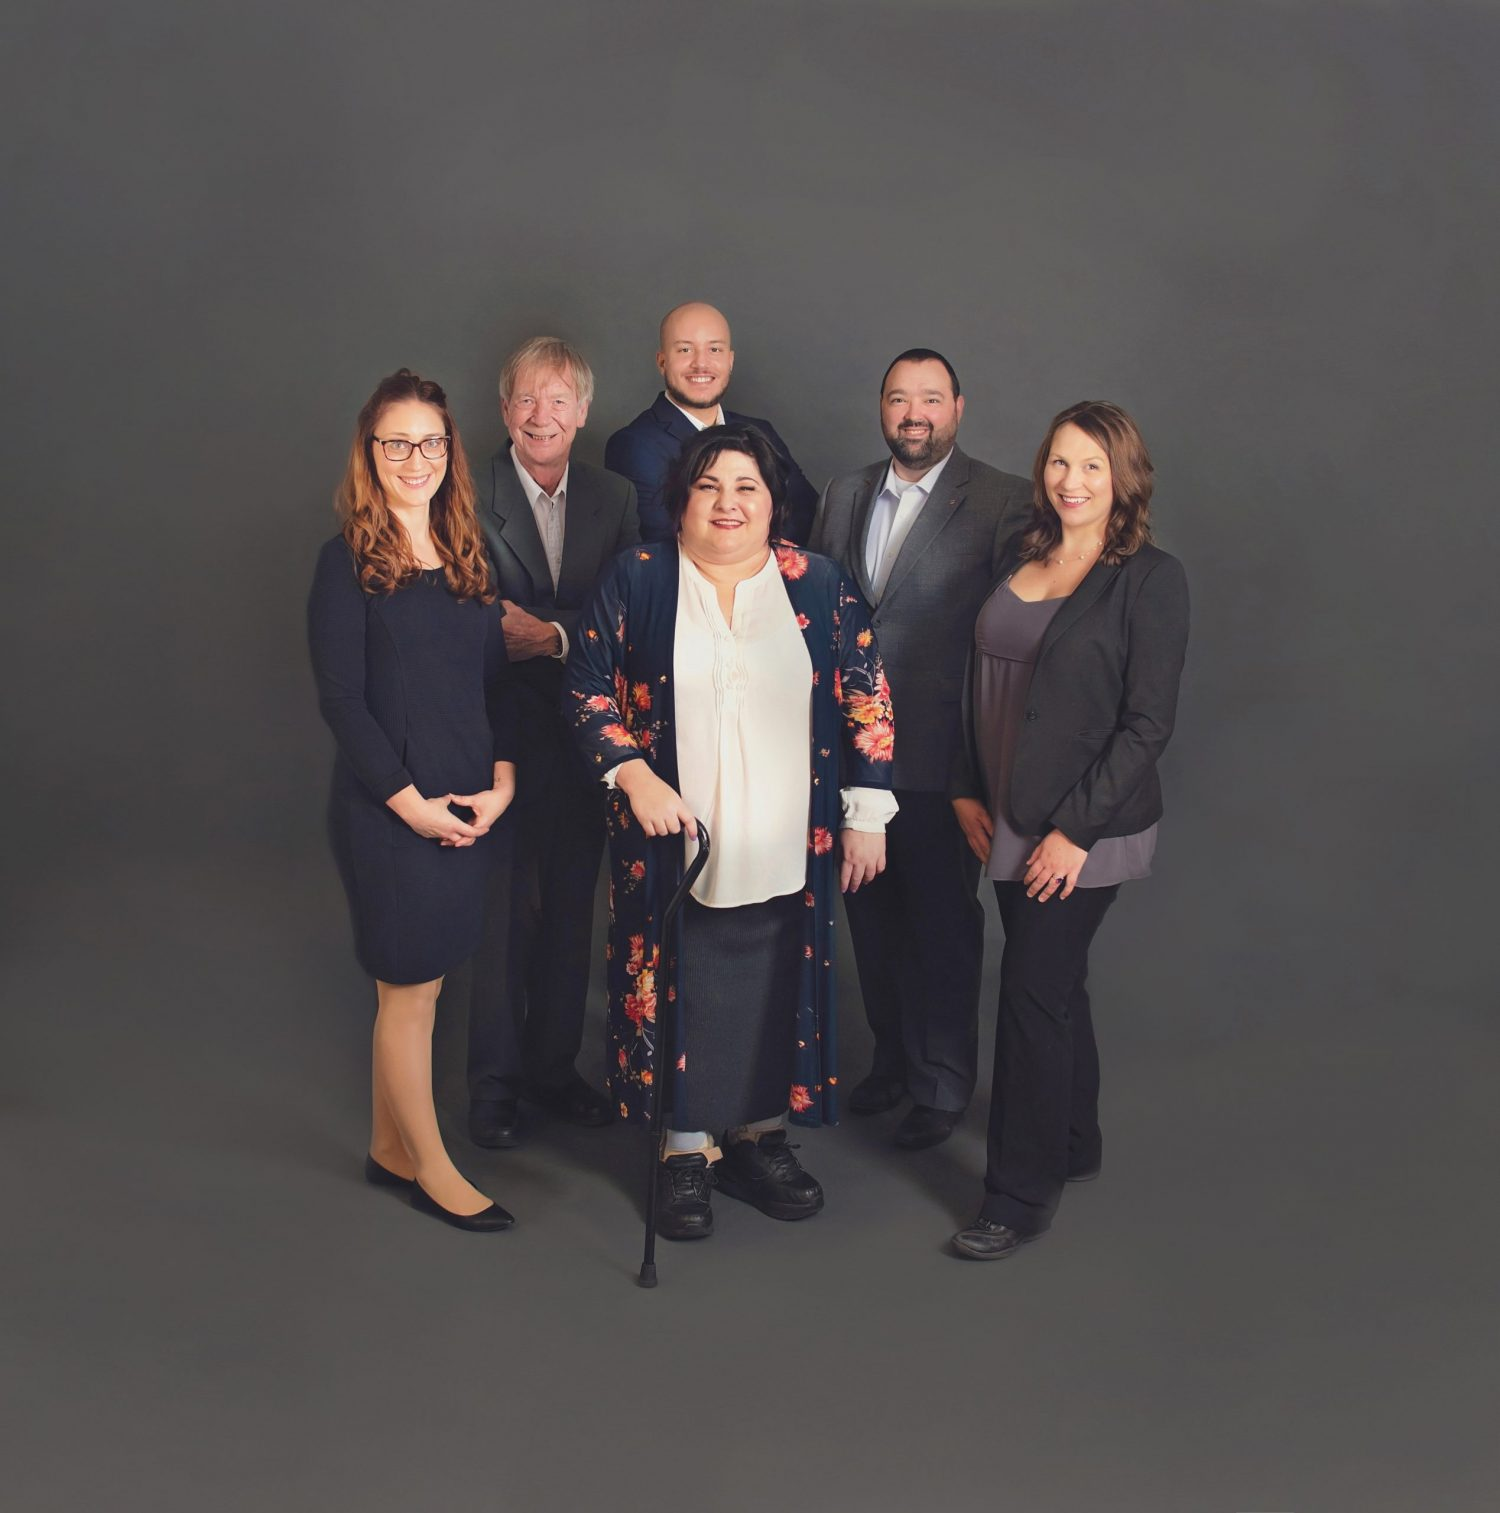 Photo of The Herrington Group staff in business attire